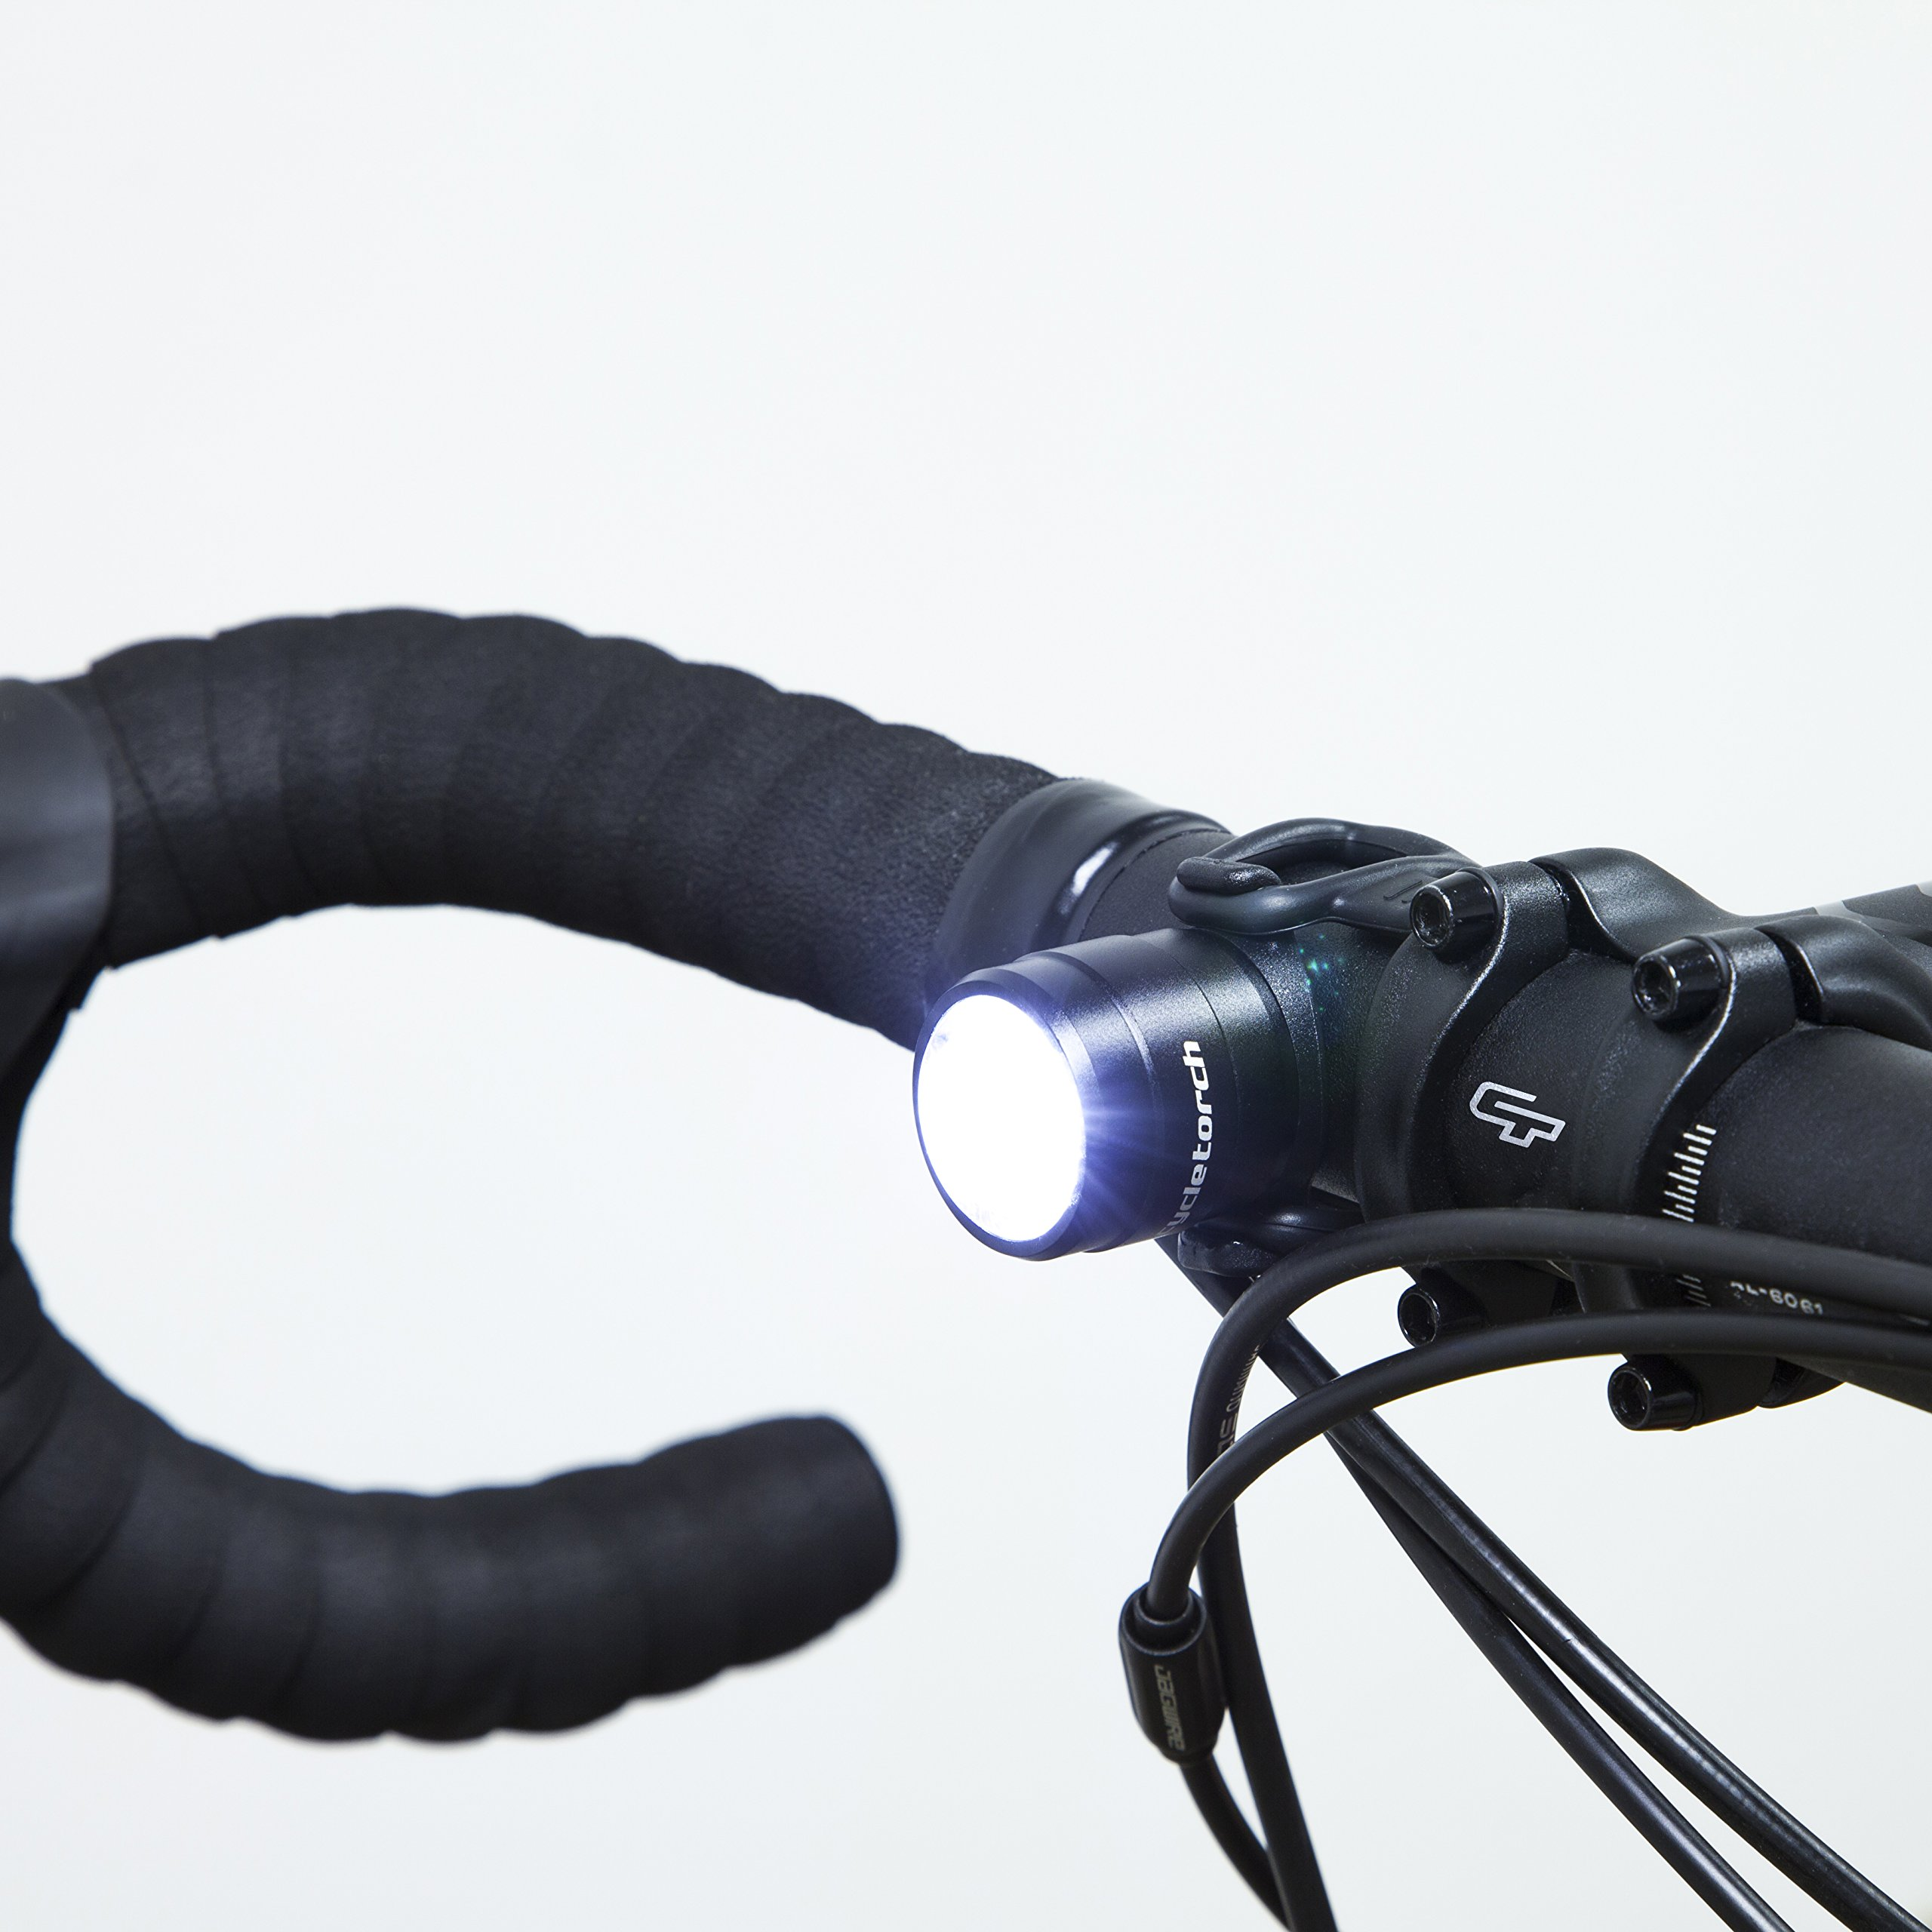 6000LM LED Bike Headlight Cycling Bicycle Front Headlamp Rear Light USB Charging